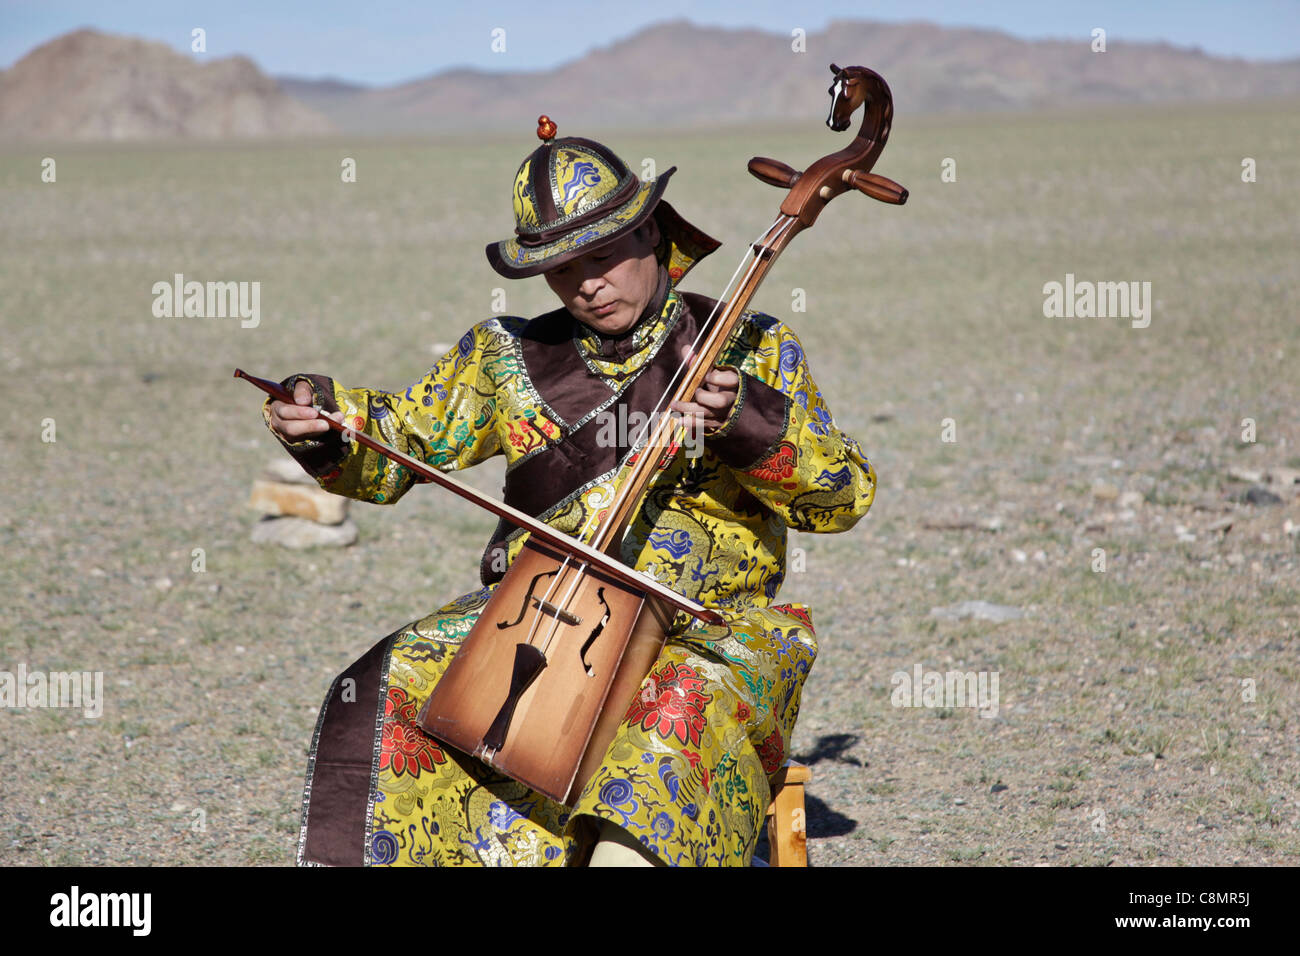 Musician playing the Morin khuur, the typical musical instrument of Mongolia - Stock Image